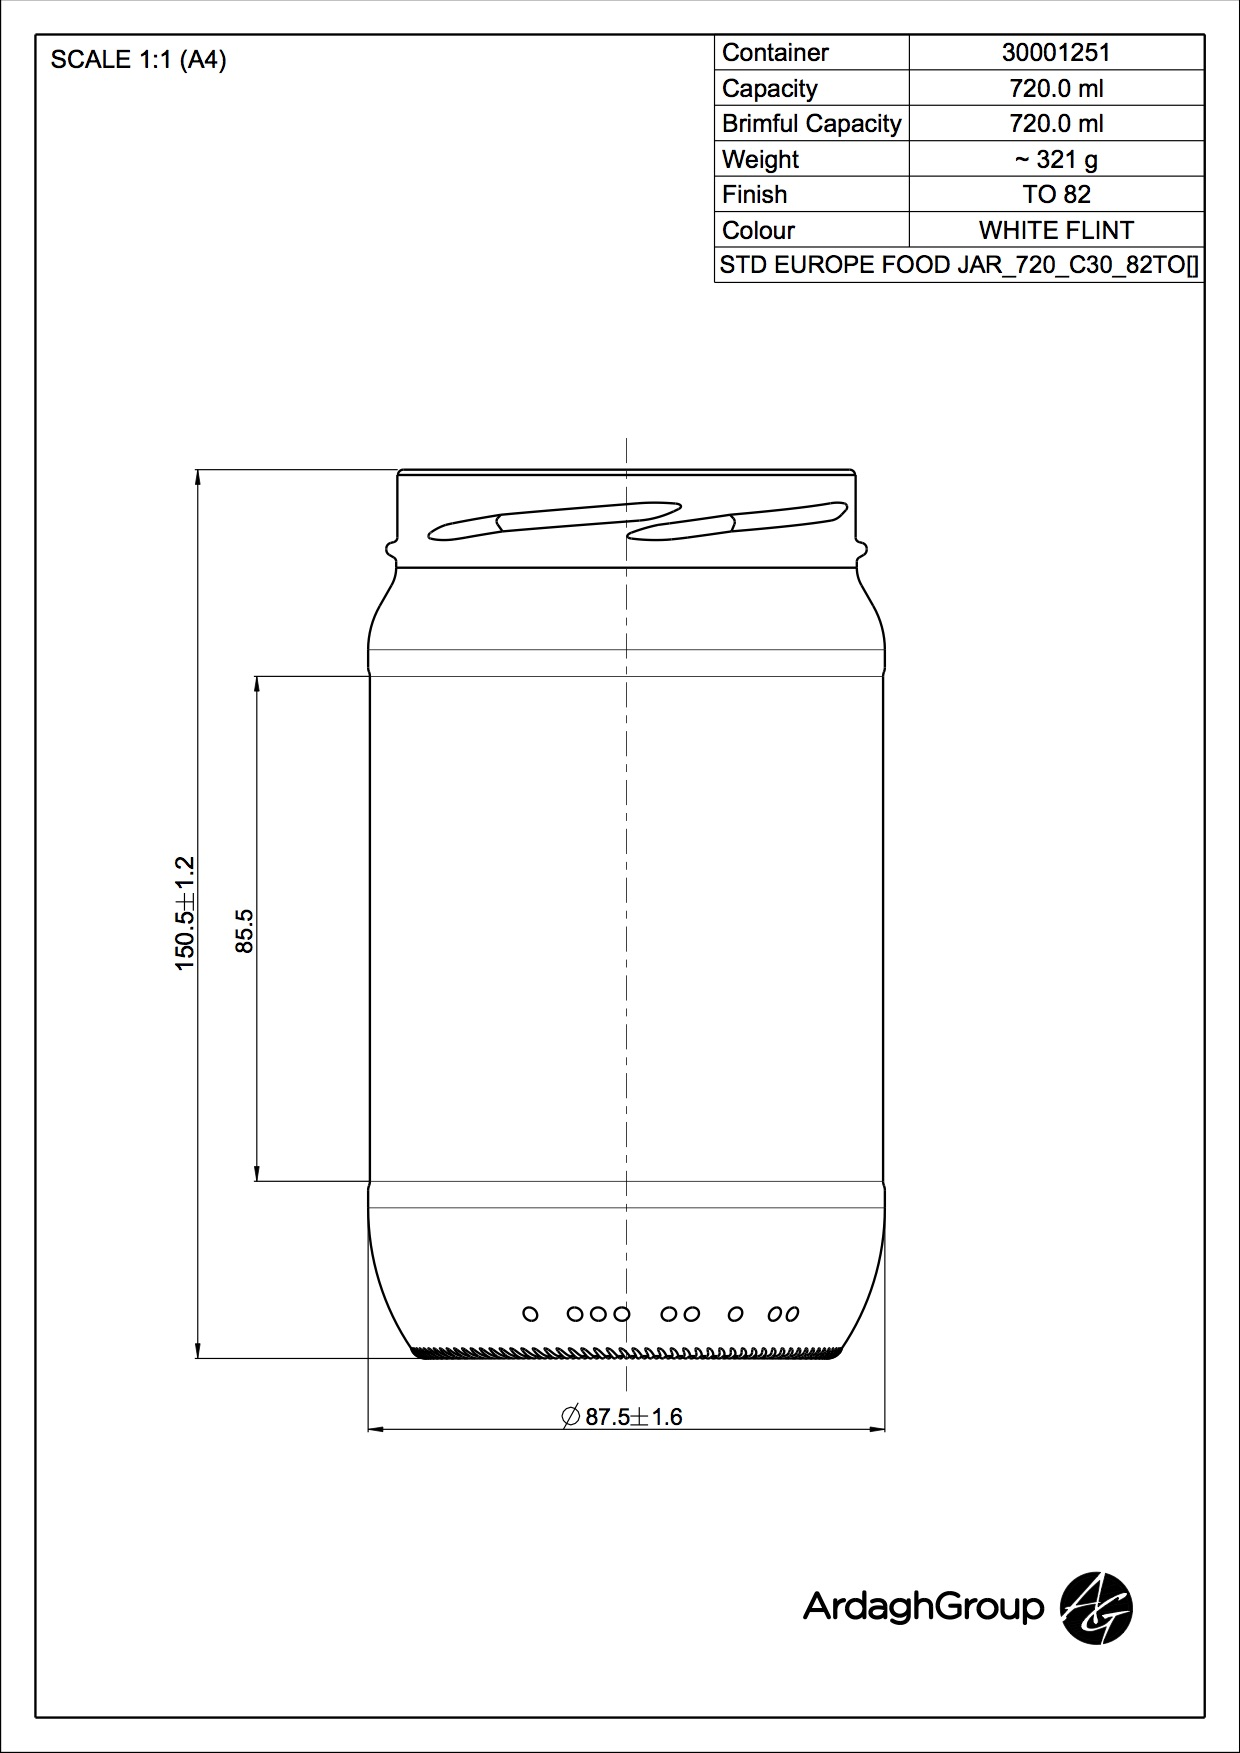 STD EUROPE FOOD JAR 720 C30 82TO